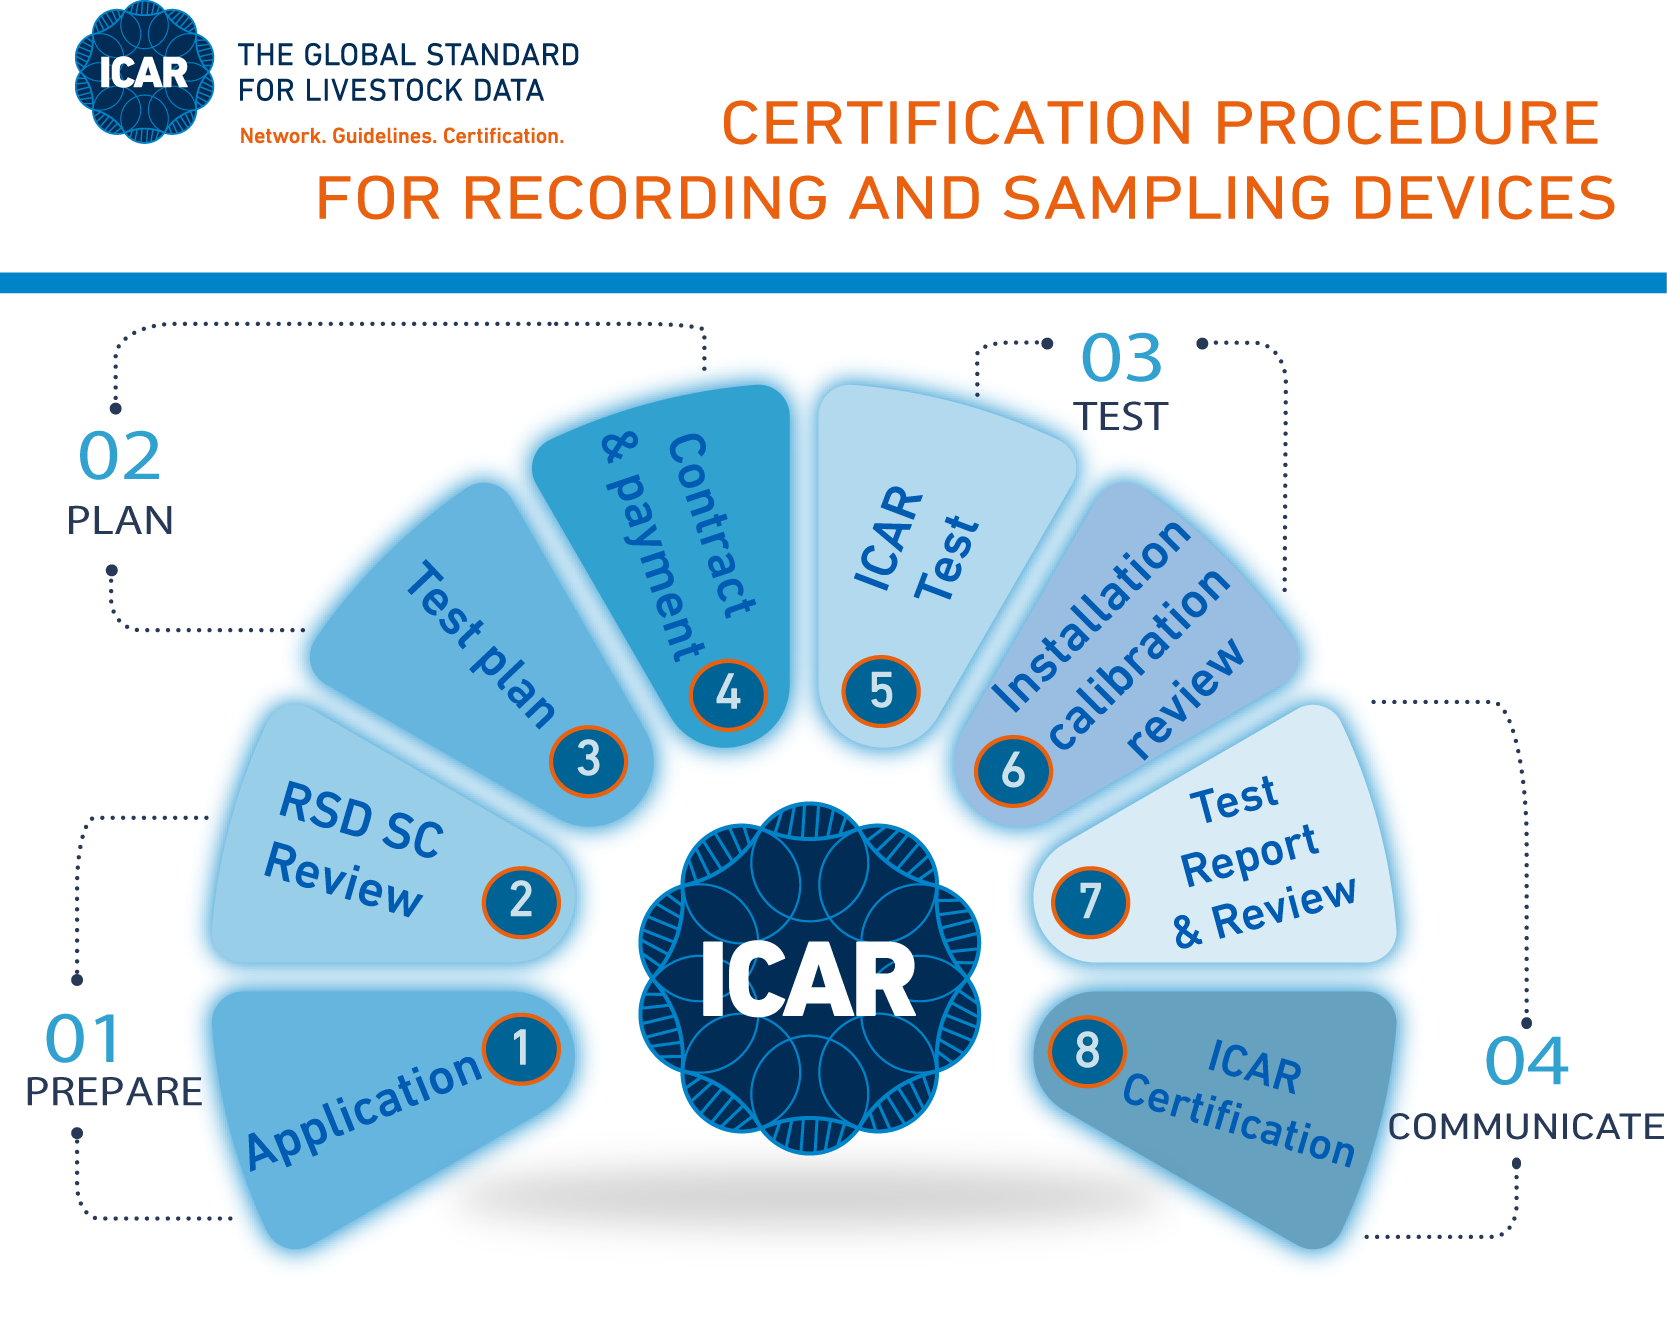 Steps To Submit A Recording And Sampling Device For Icar Testing And